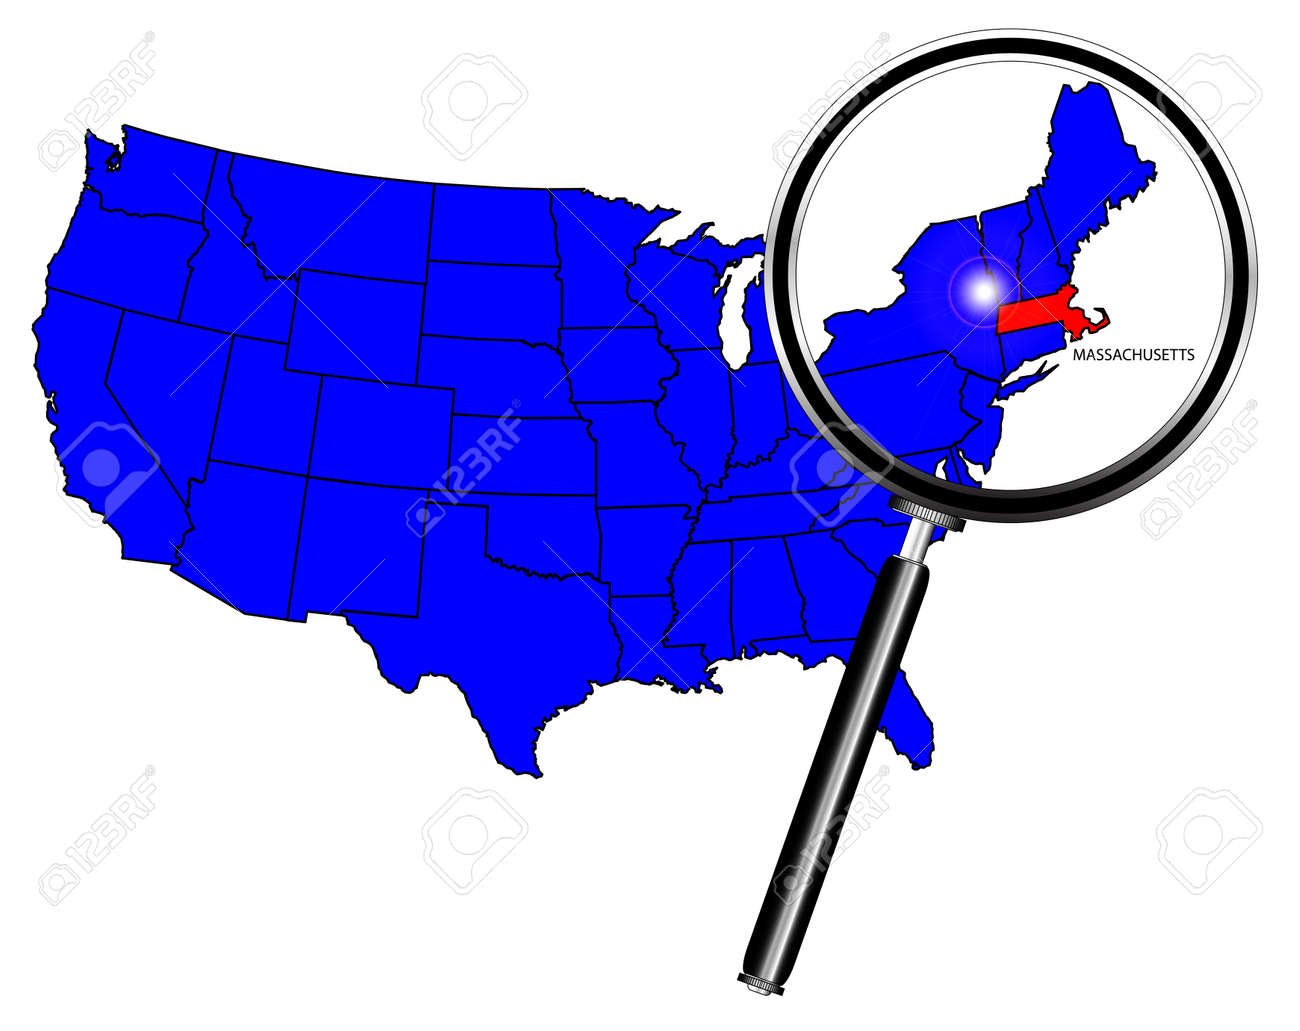 Massachusetts State Outline Set Into A Map Of The United States - Massachusetts us map